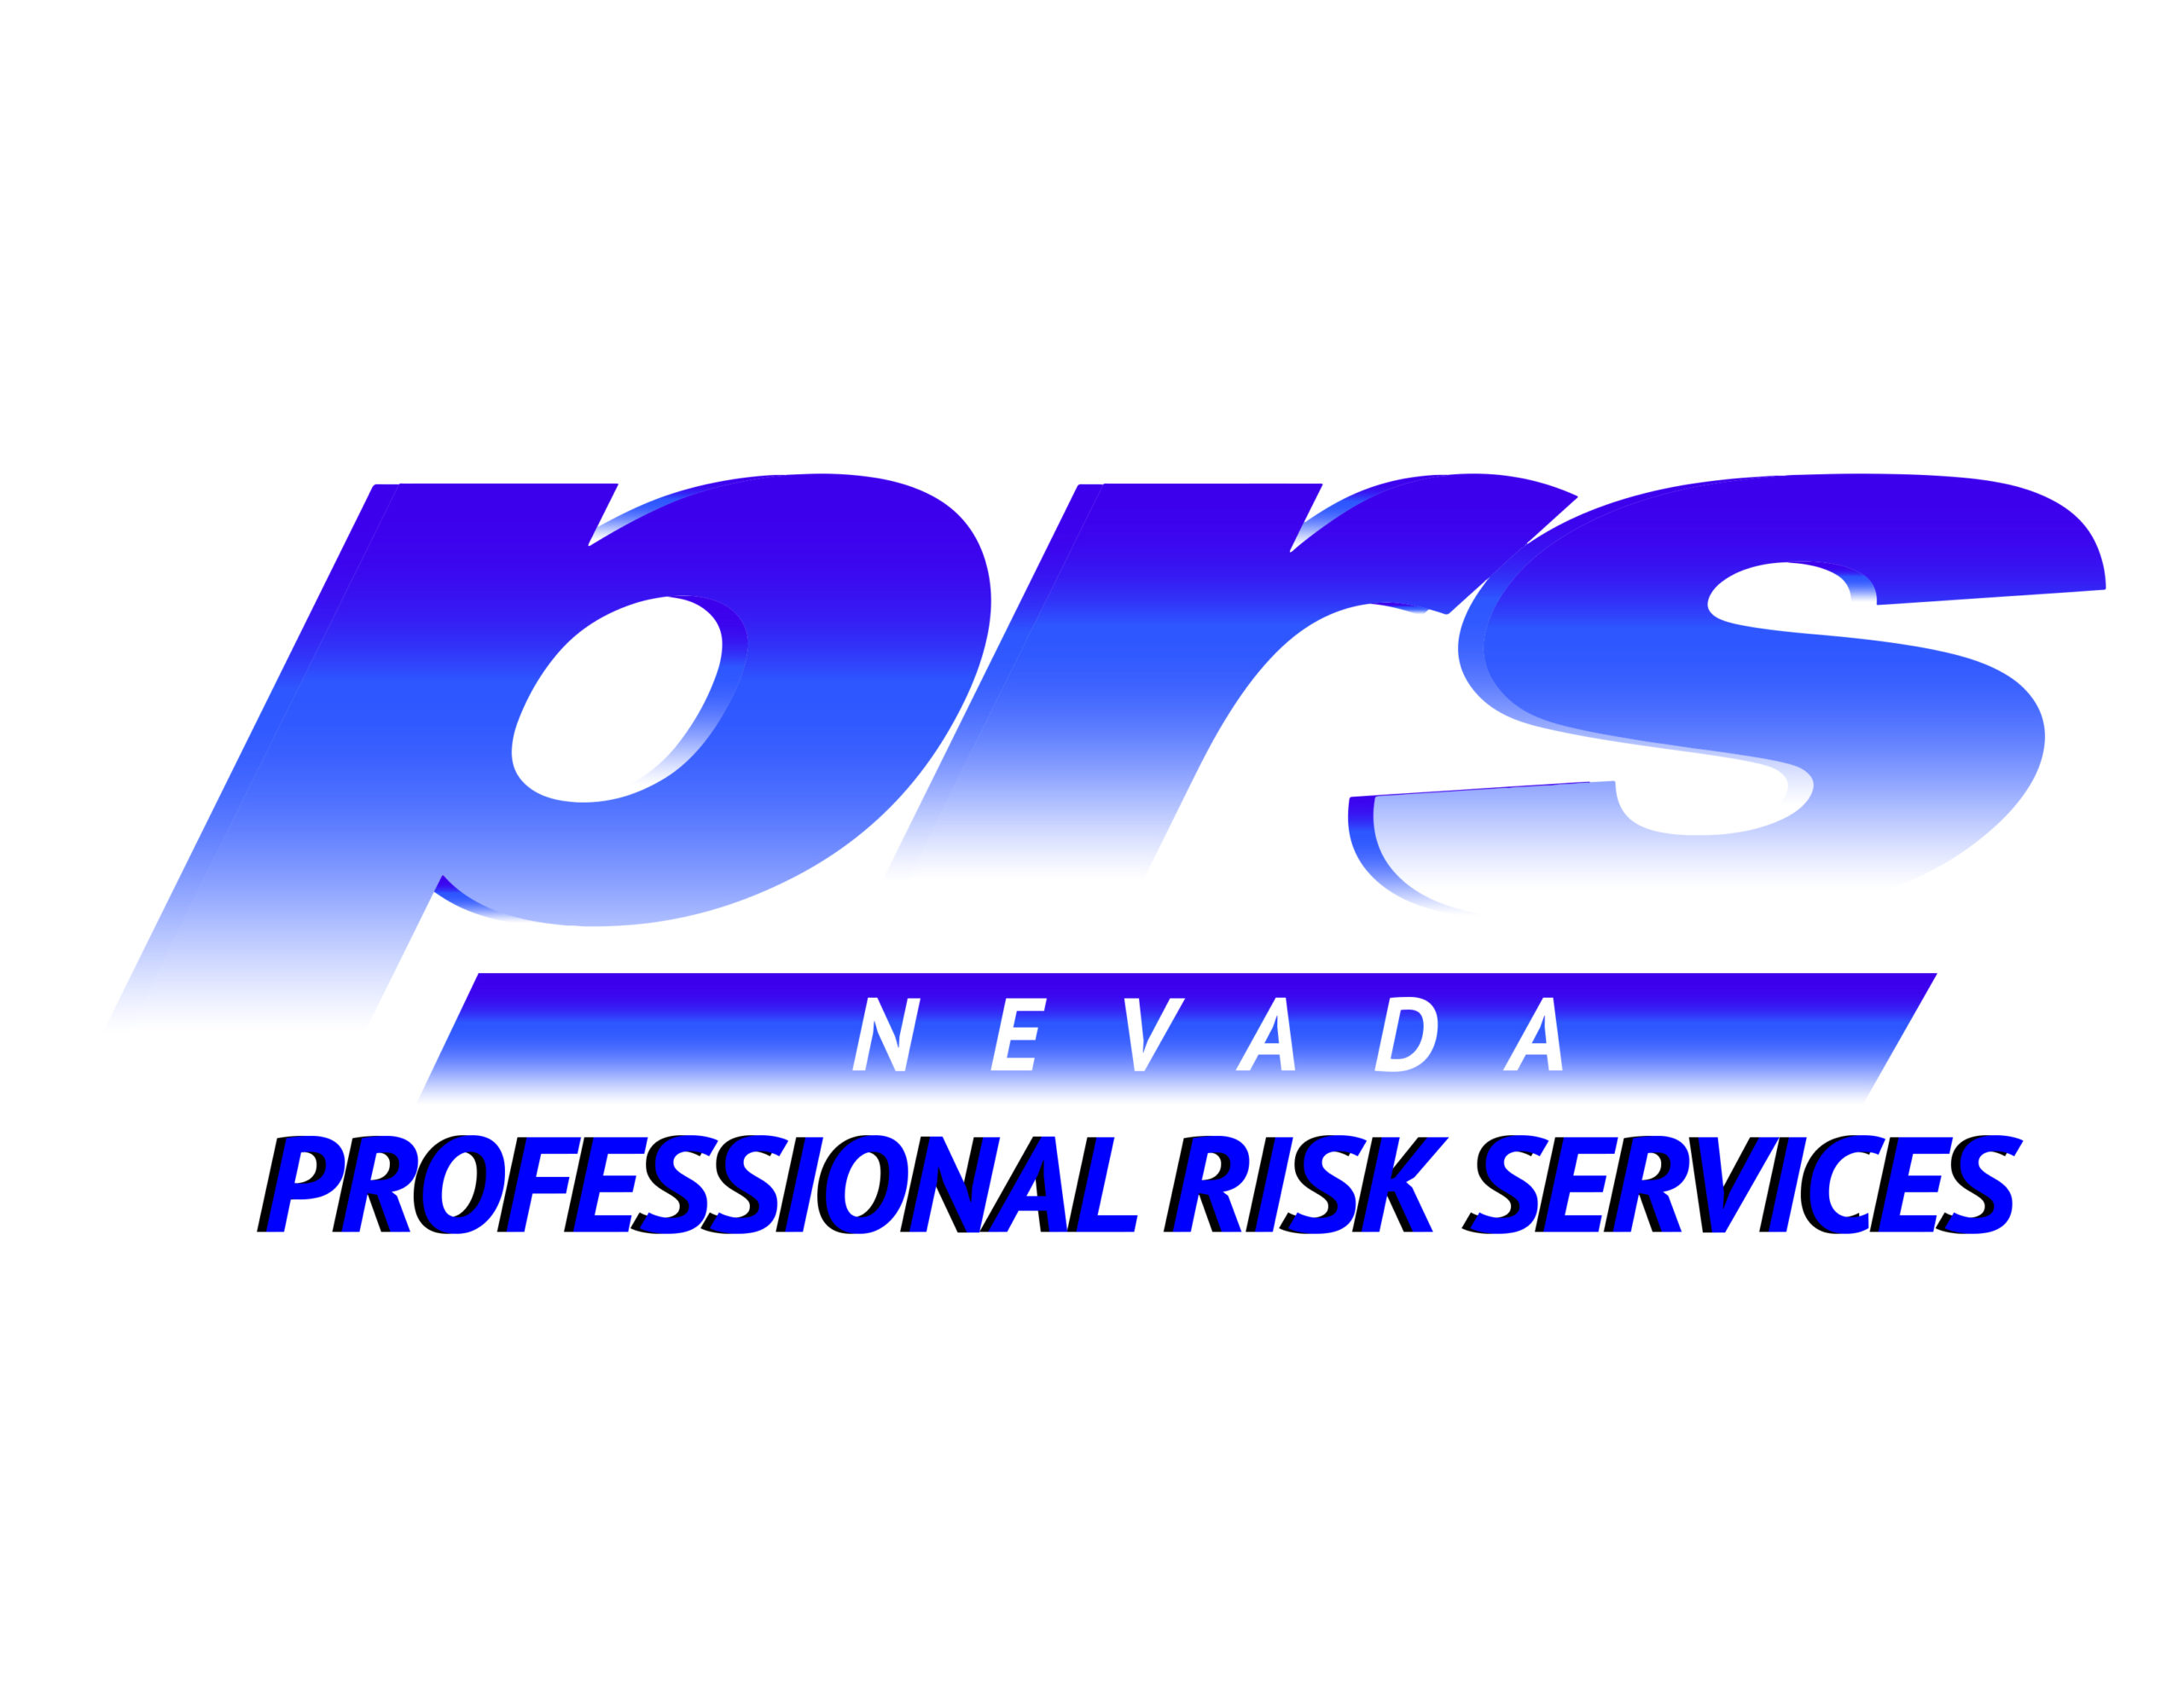 prsnevada scaled - Professional Risk Services Nevada